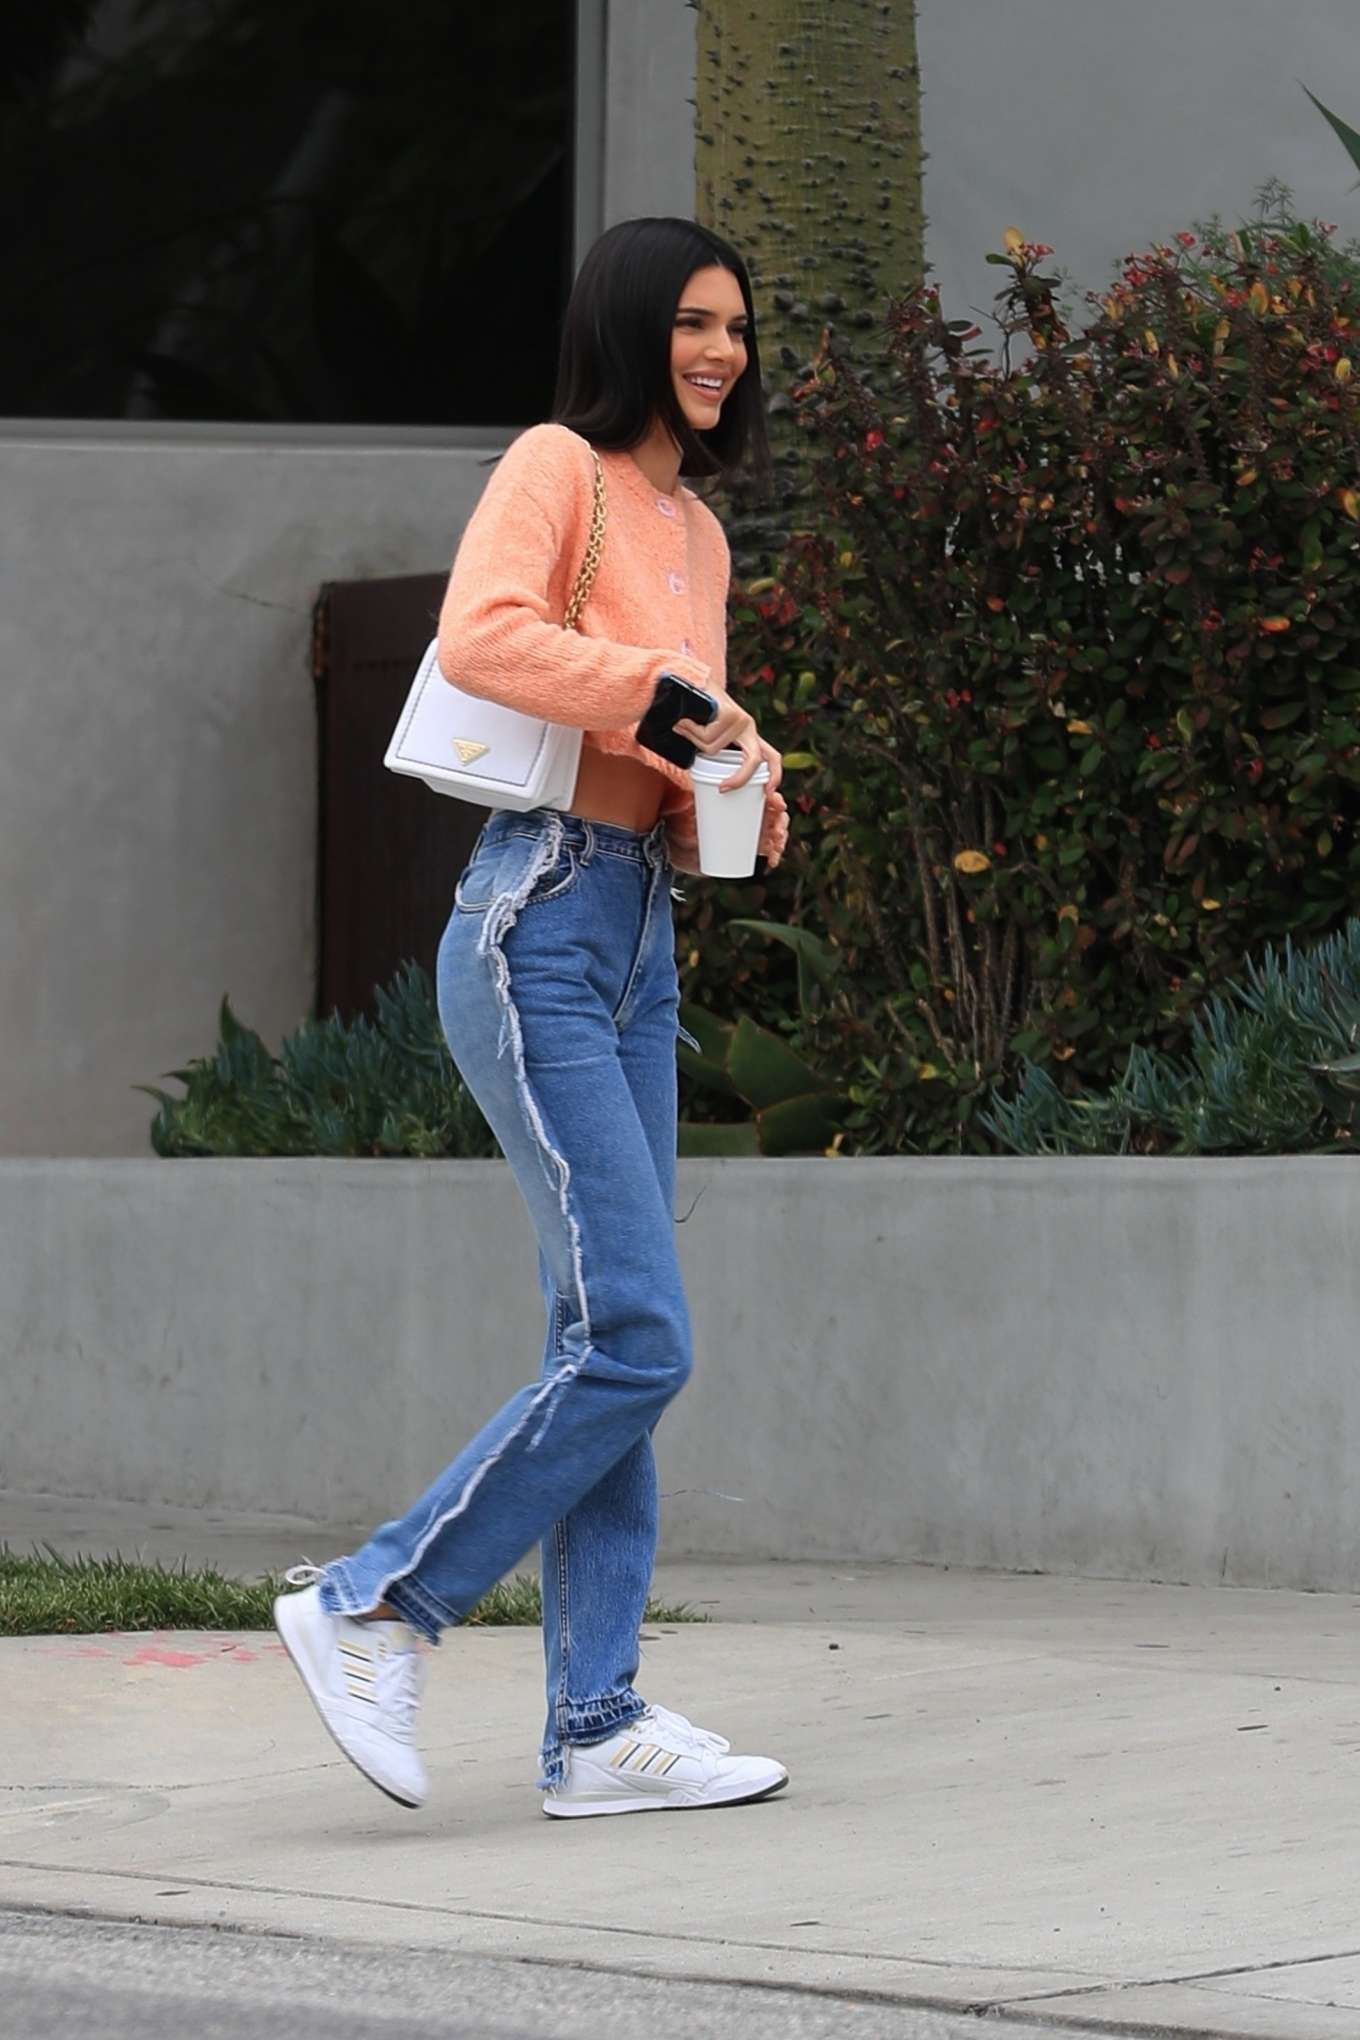 Kendall Jenner rocking striped white Adidas lace-up sneakers